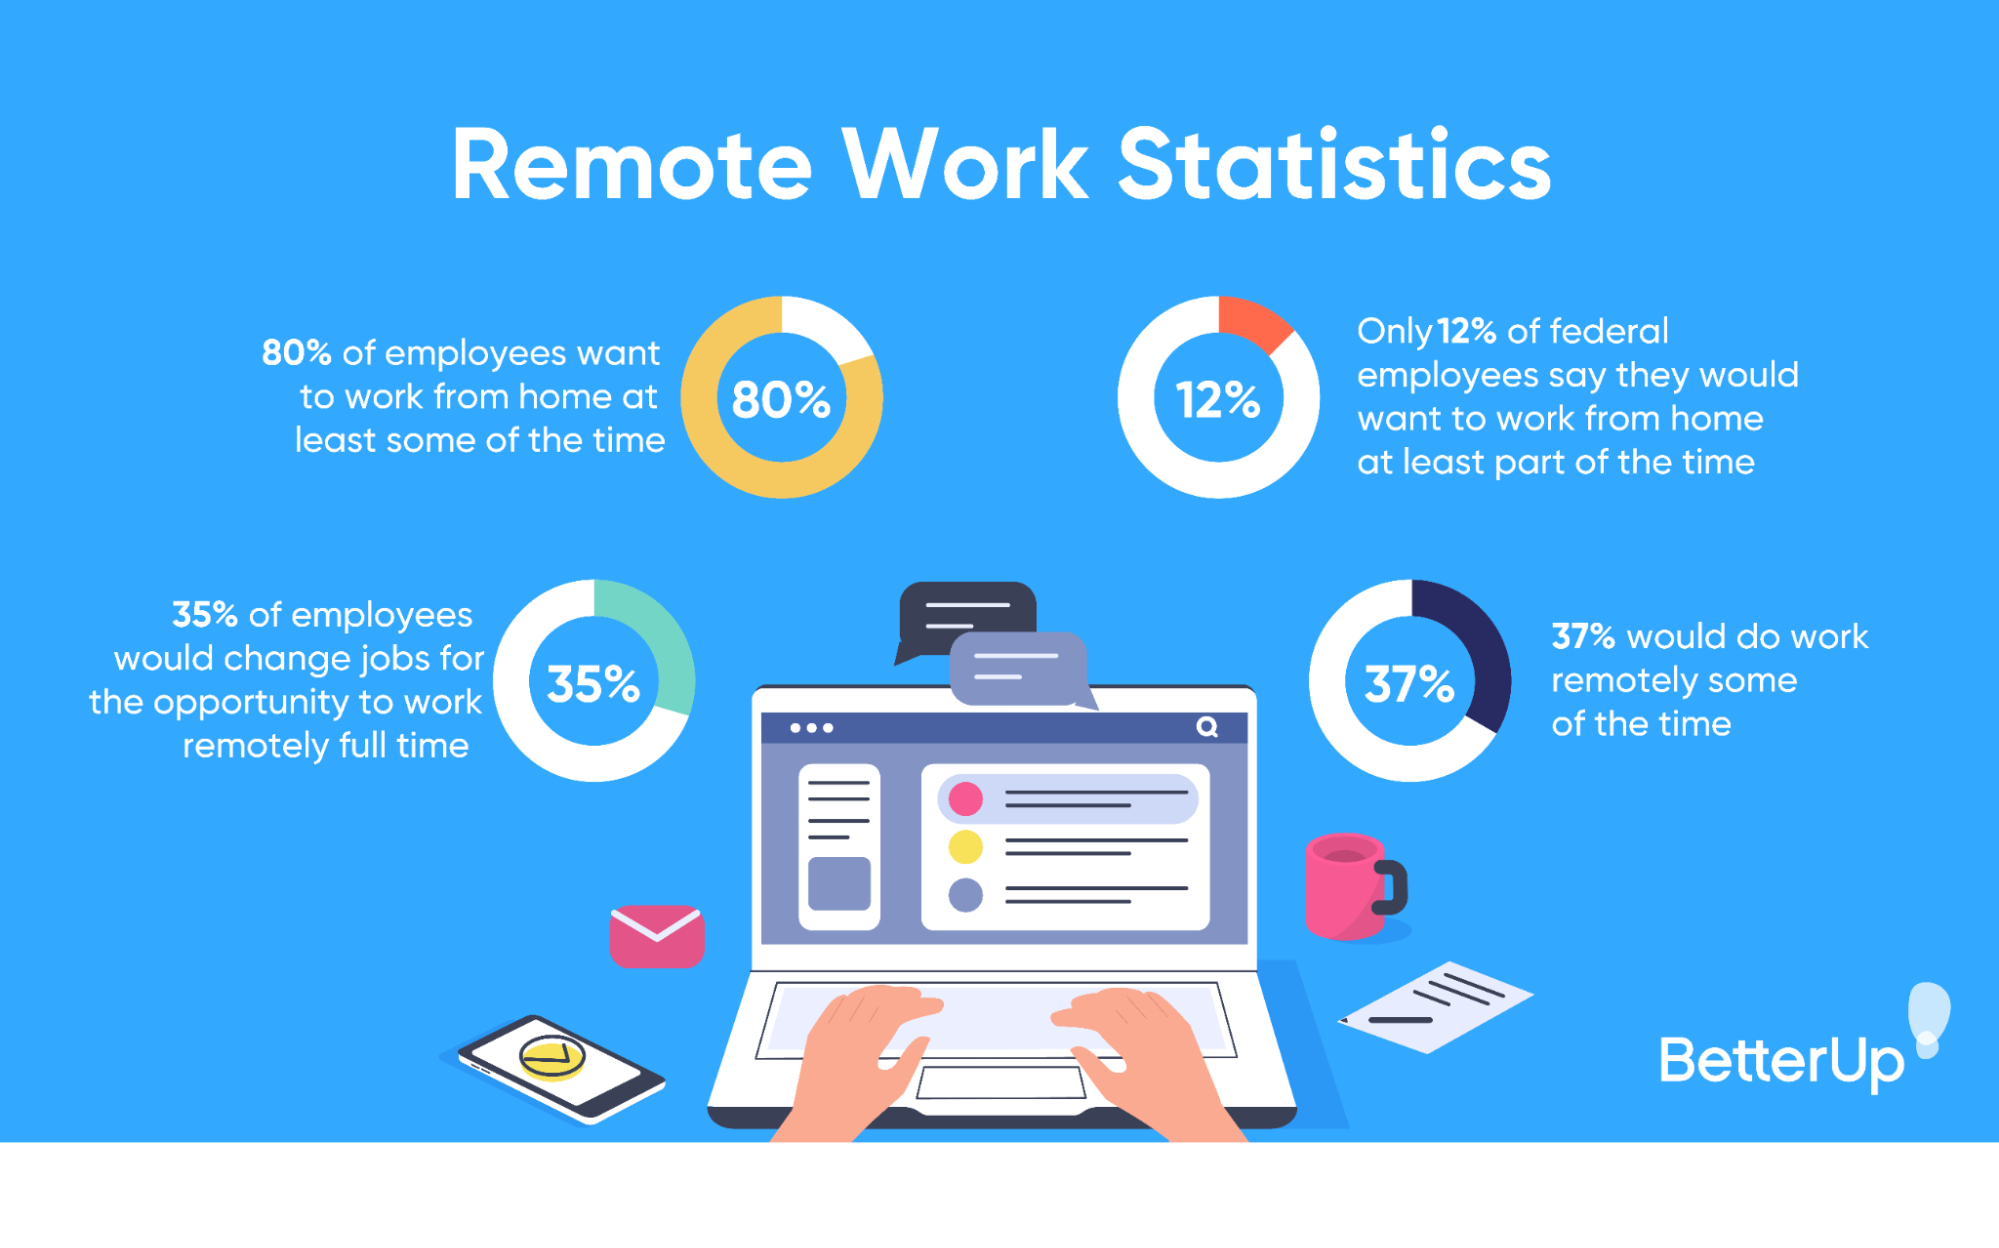 graphic-remote-work-statistics-how-to-work-from-home